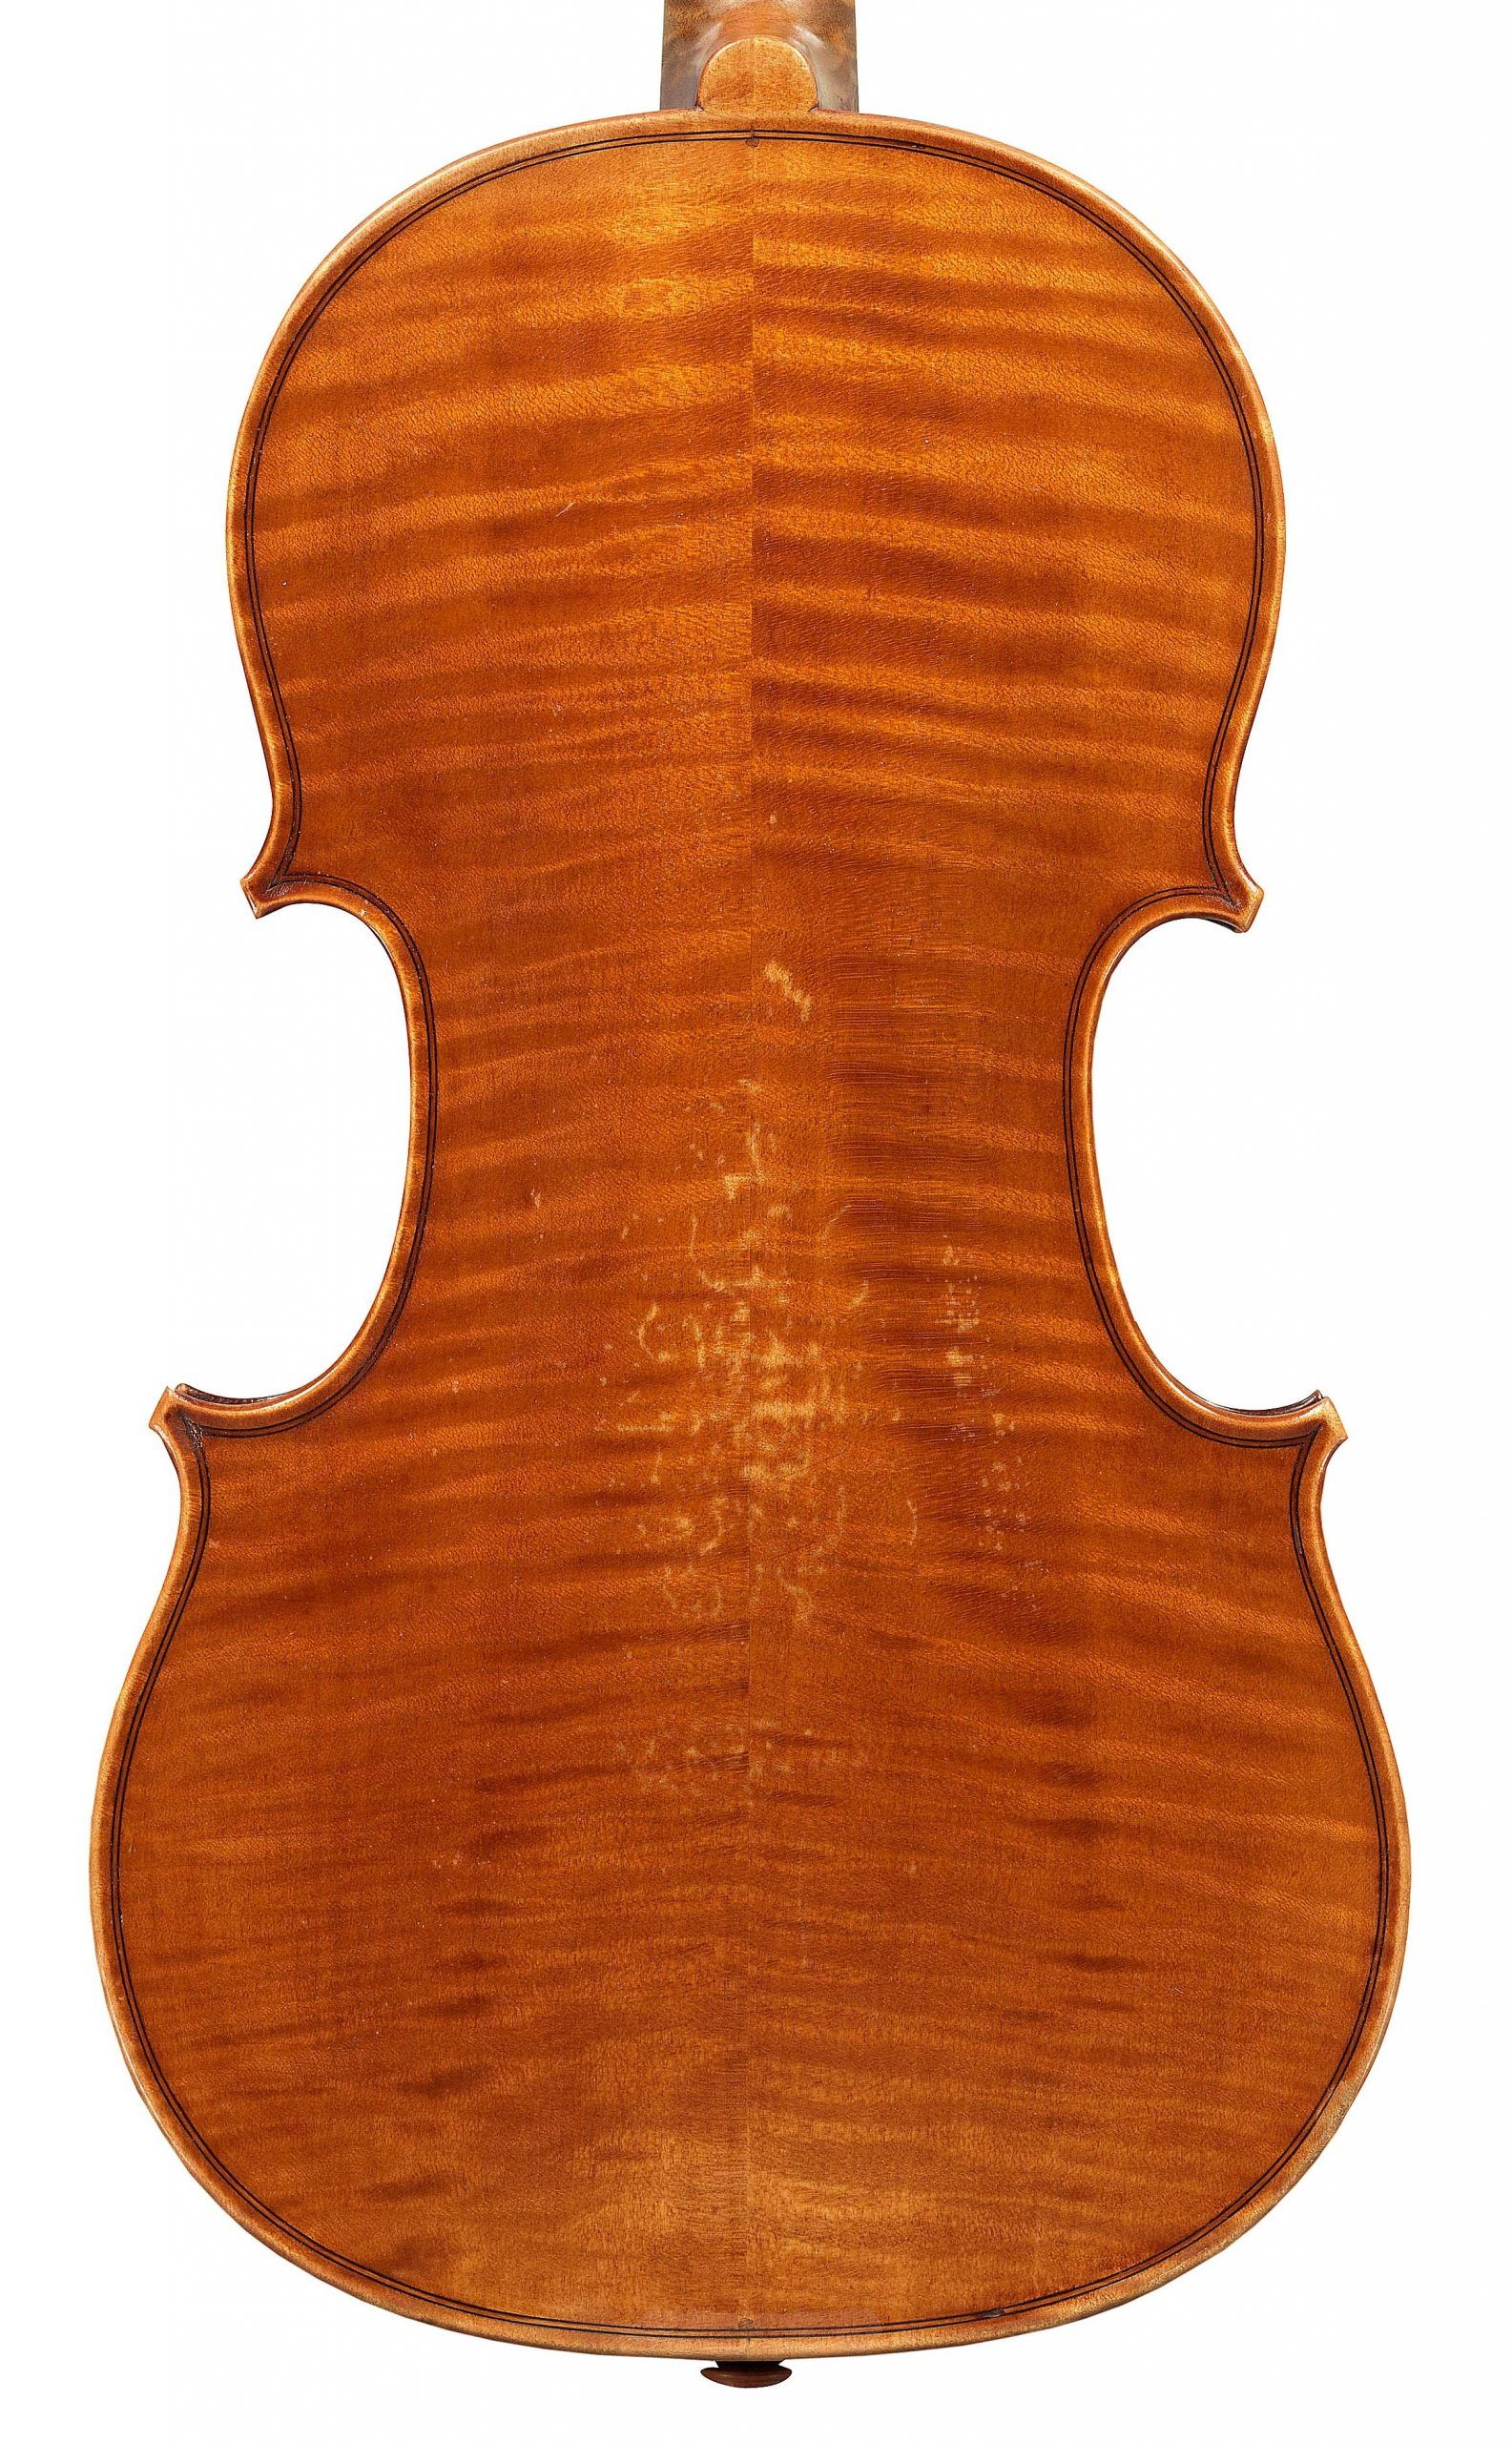 Back of a JB Vuillaume violin, dated 1856, exhibited by Ingles & Hayday at Sotheby's in 2012